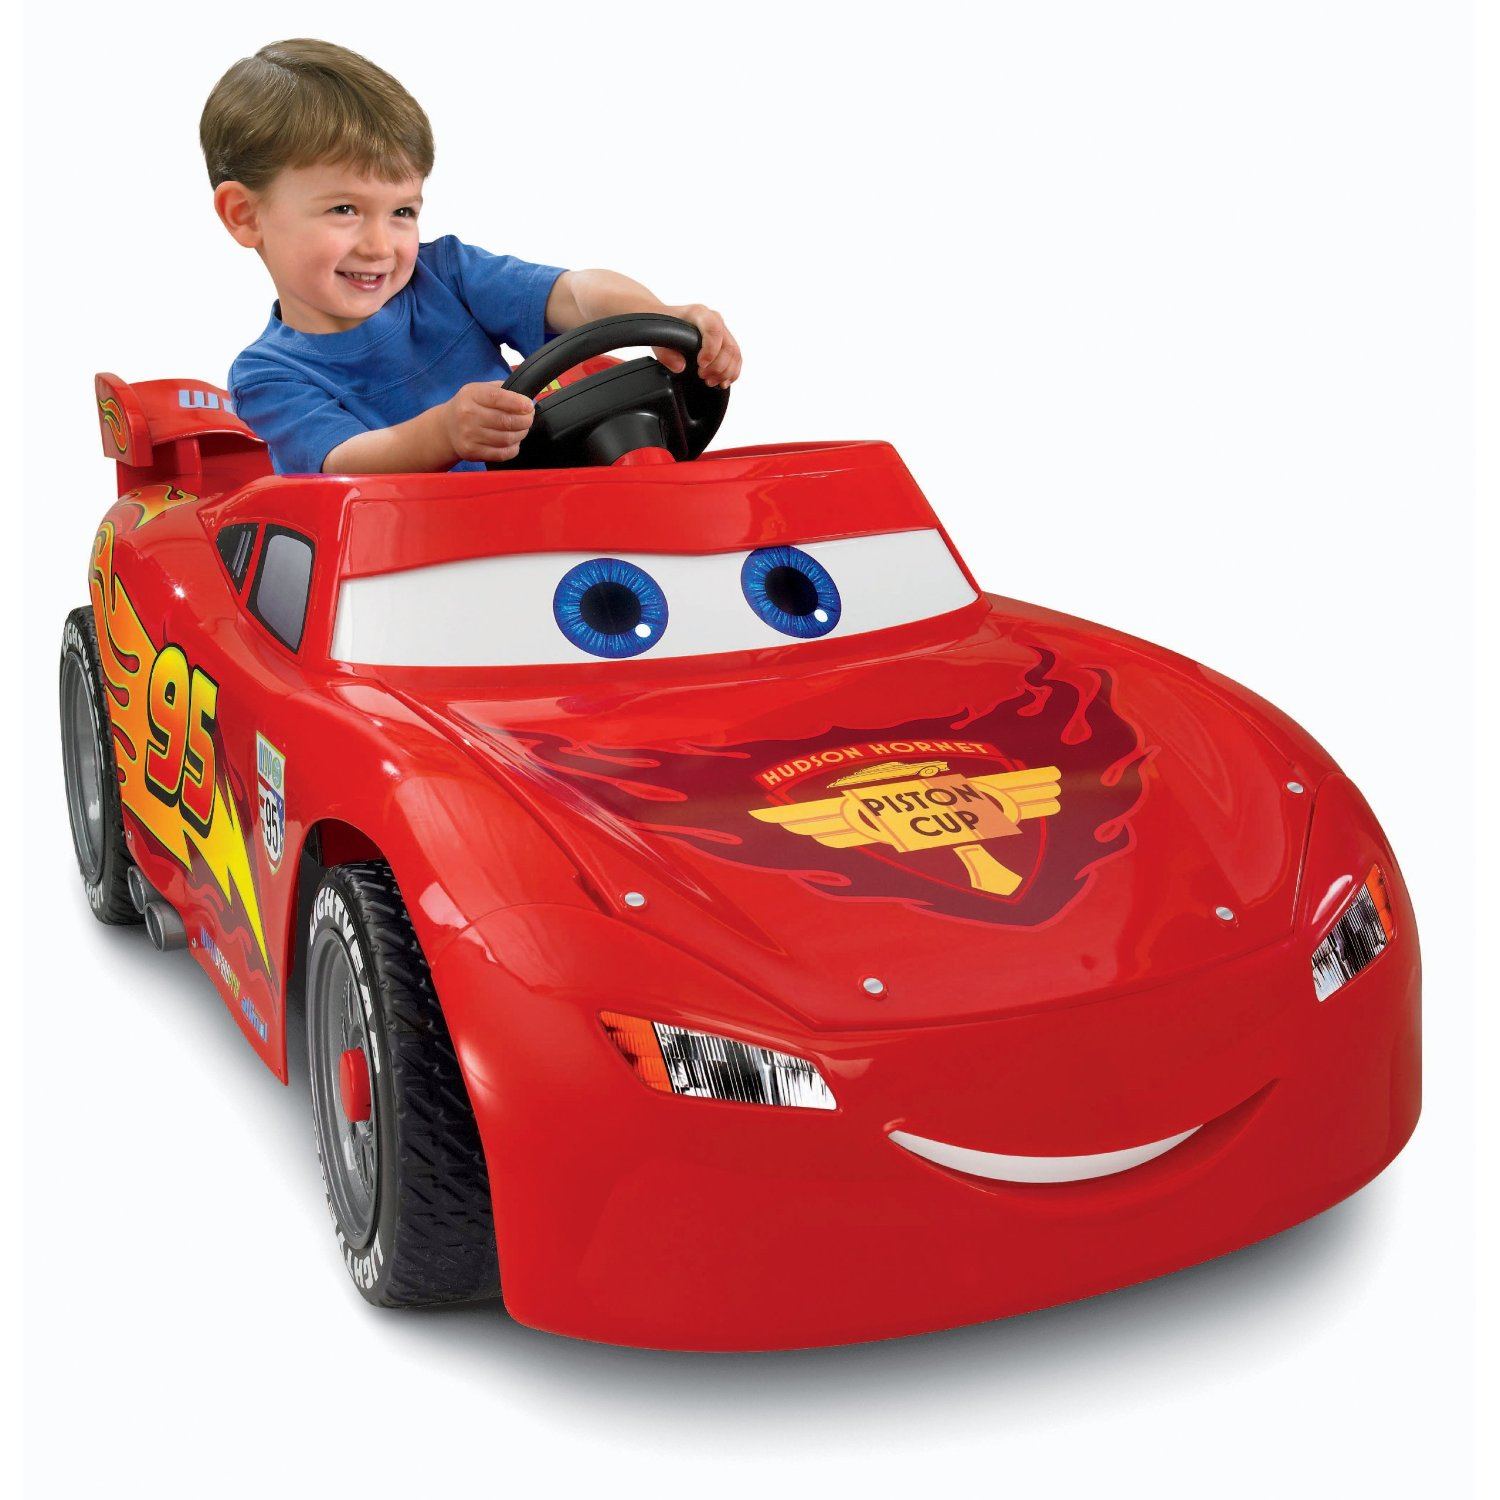 Ride On Toy Car : The best ride on toy cars for kids